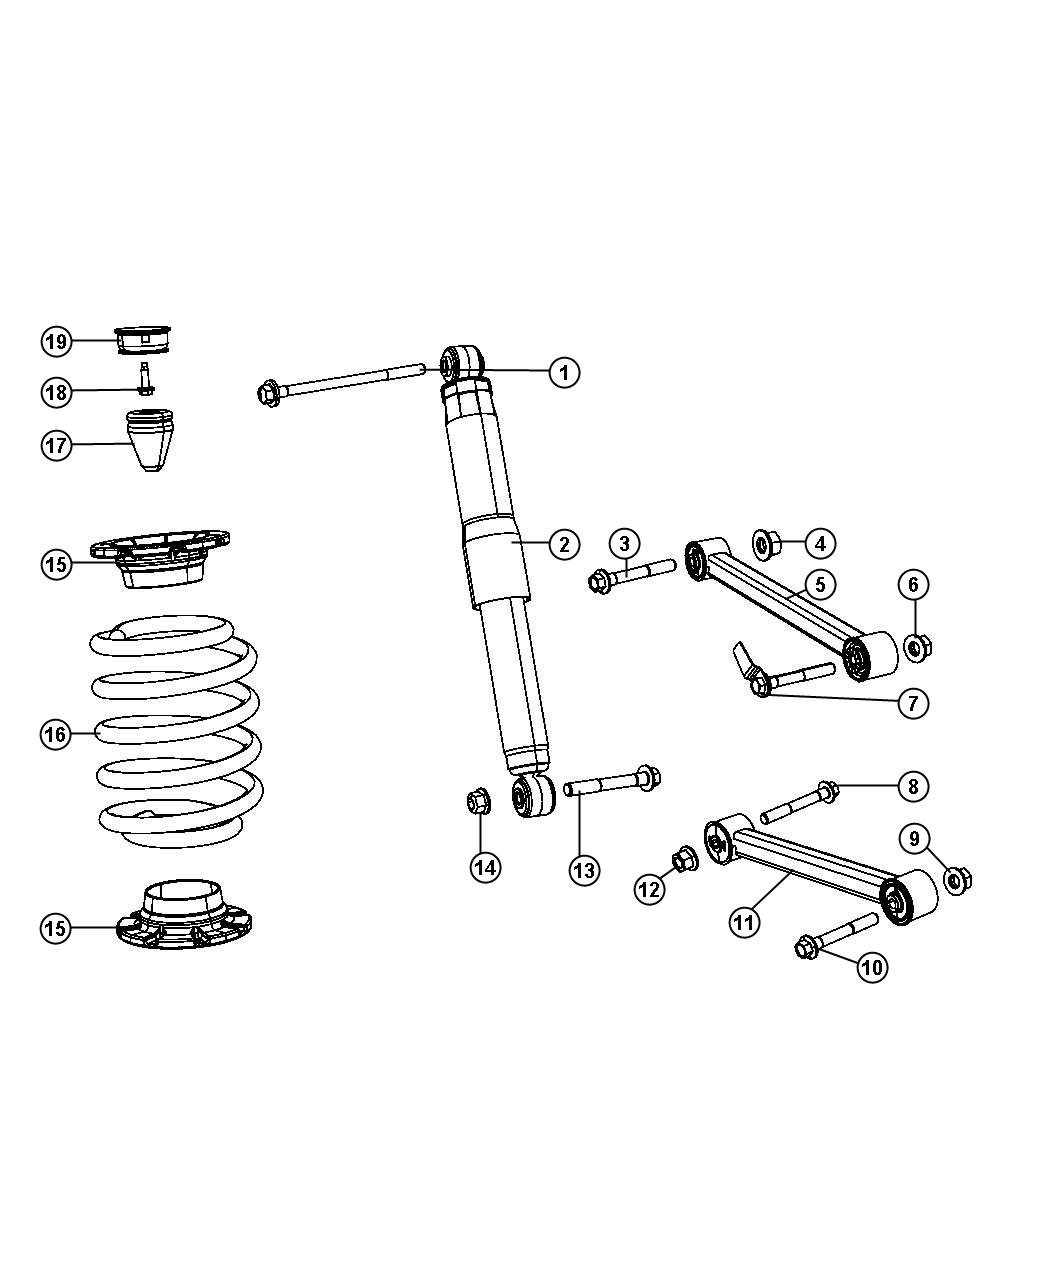 Jeep Grand Cherokee Shock absorber. Suspension. Rear